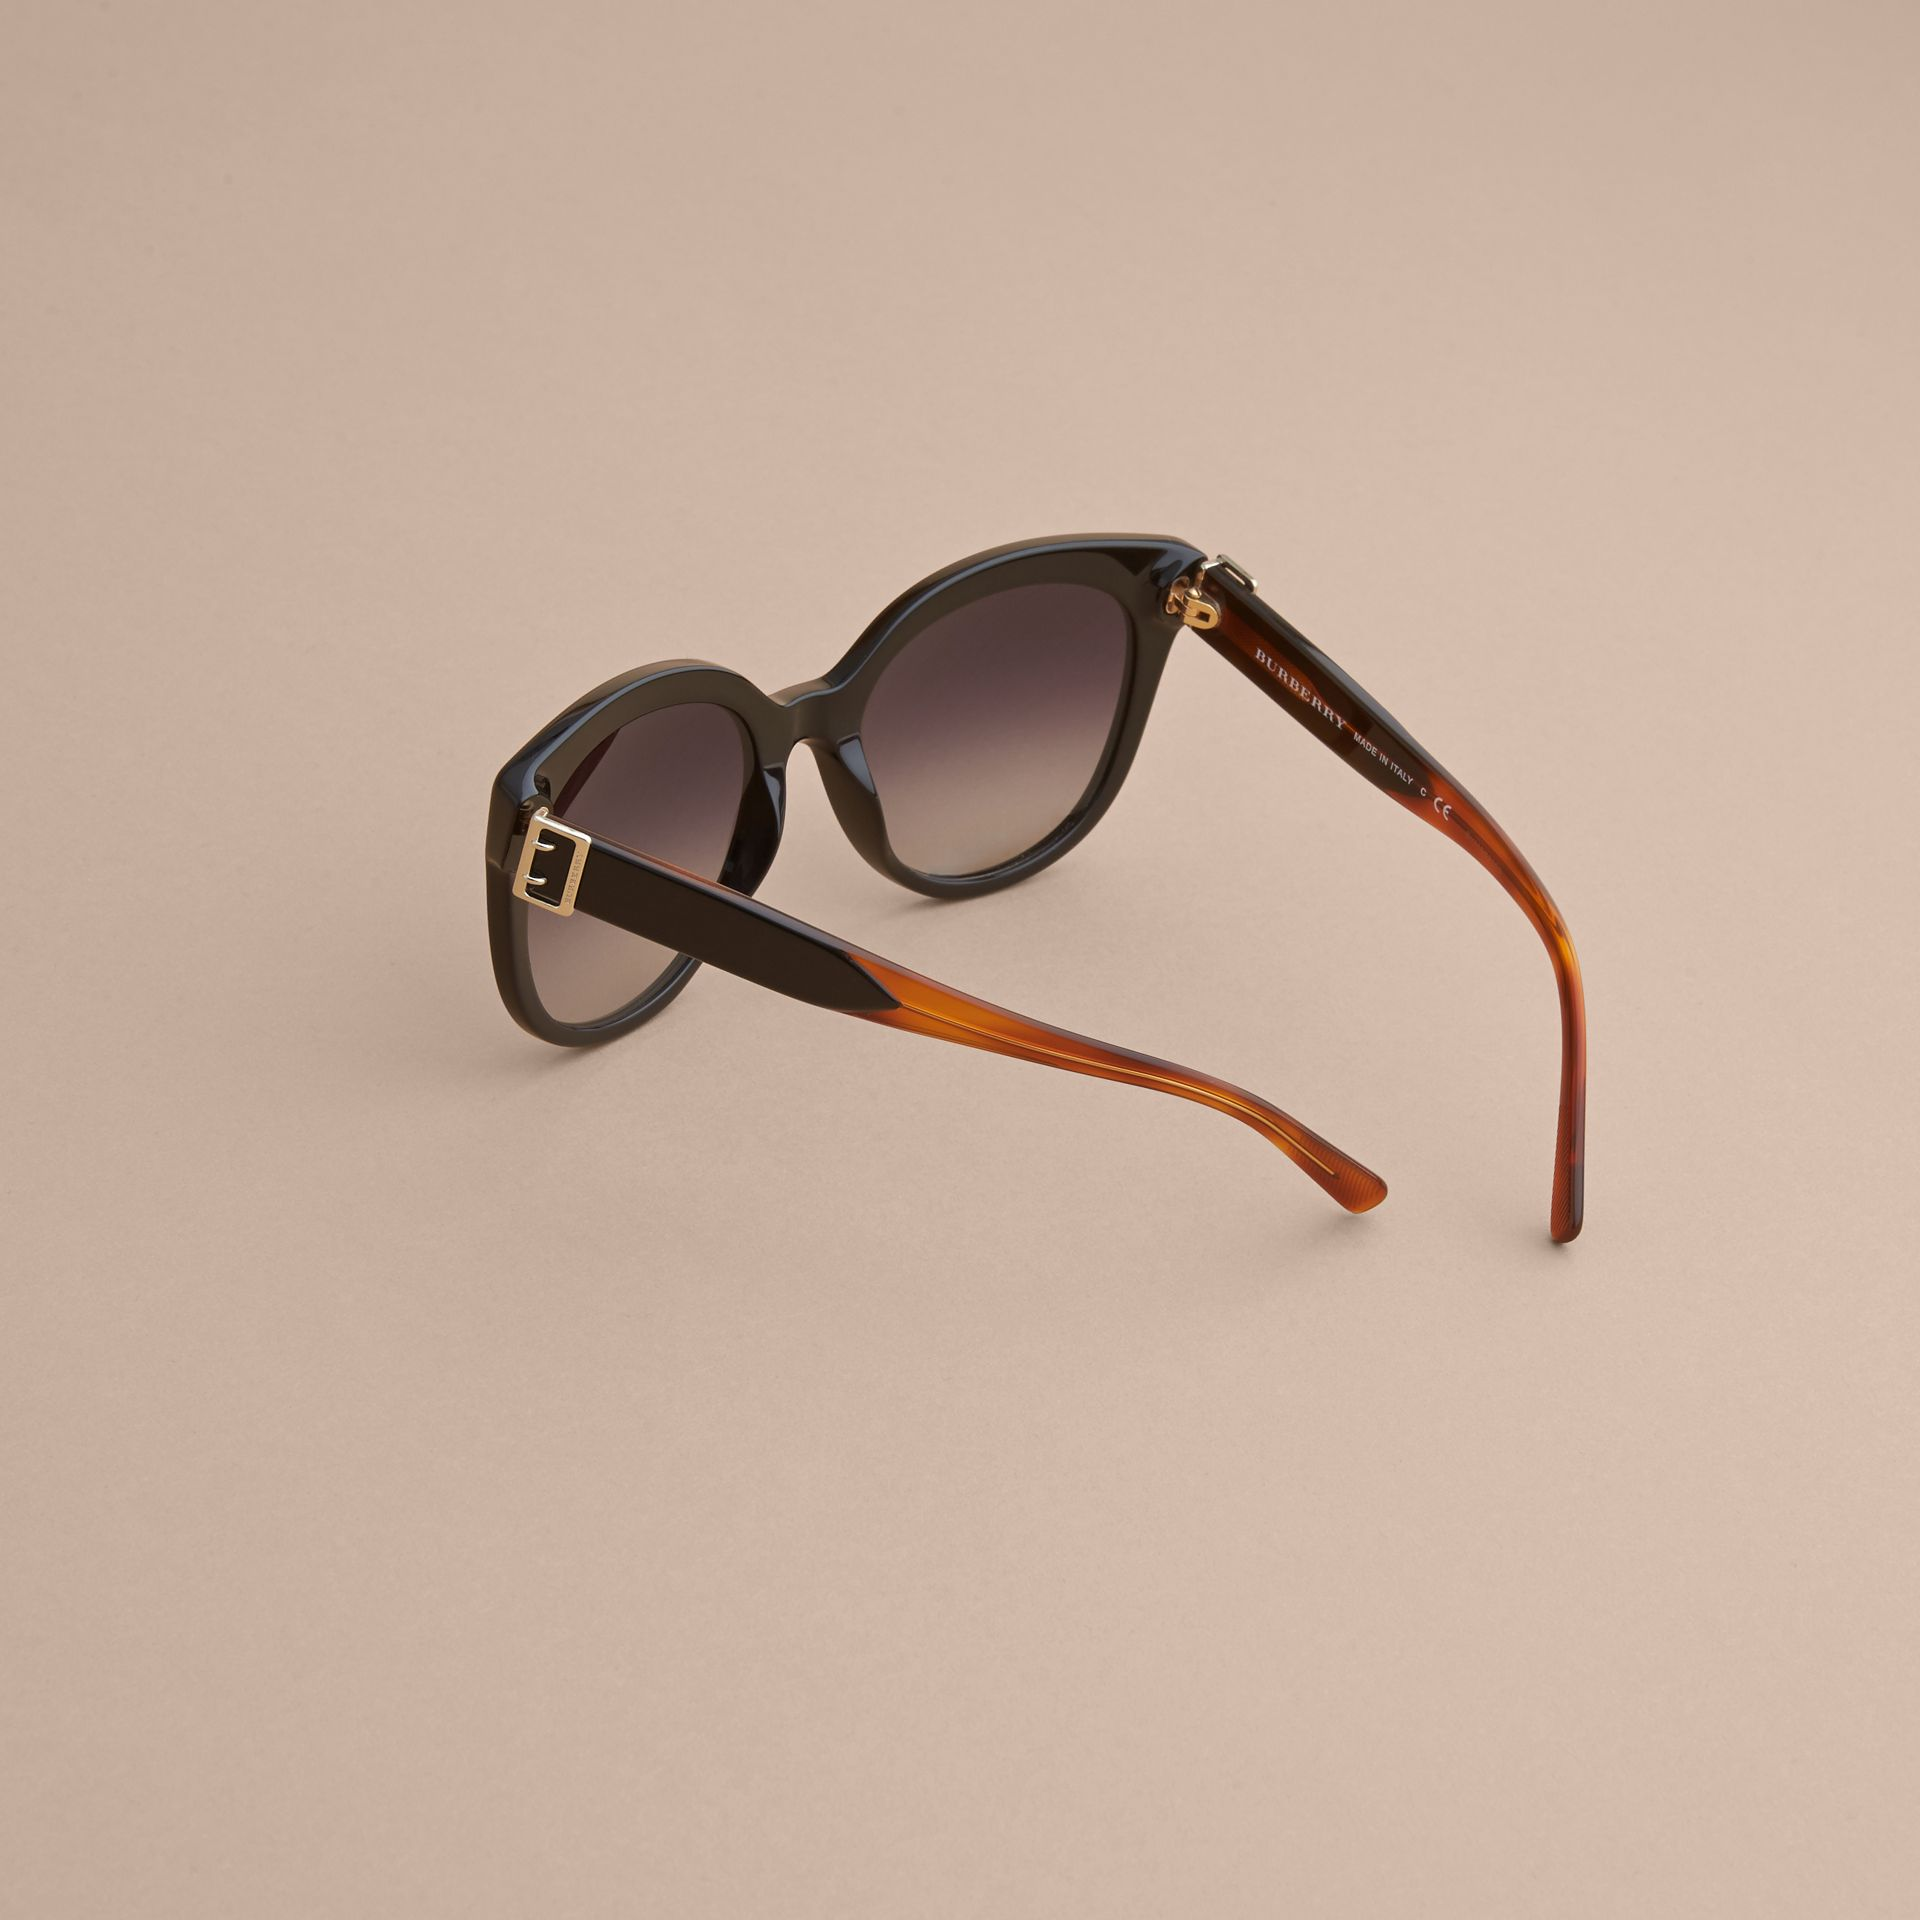 Buckle Detail Cat-eye Frame Sunglasses in Black - Women | Burberry Singapore - gallery image 3